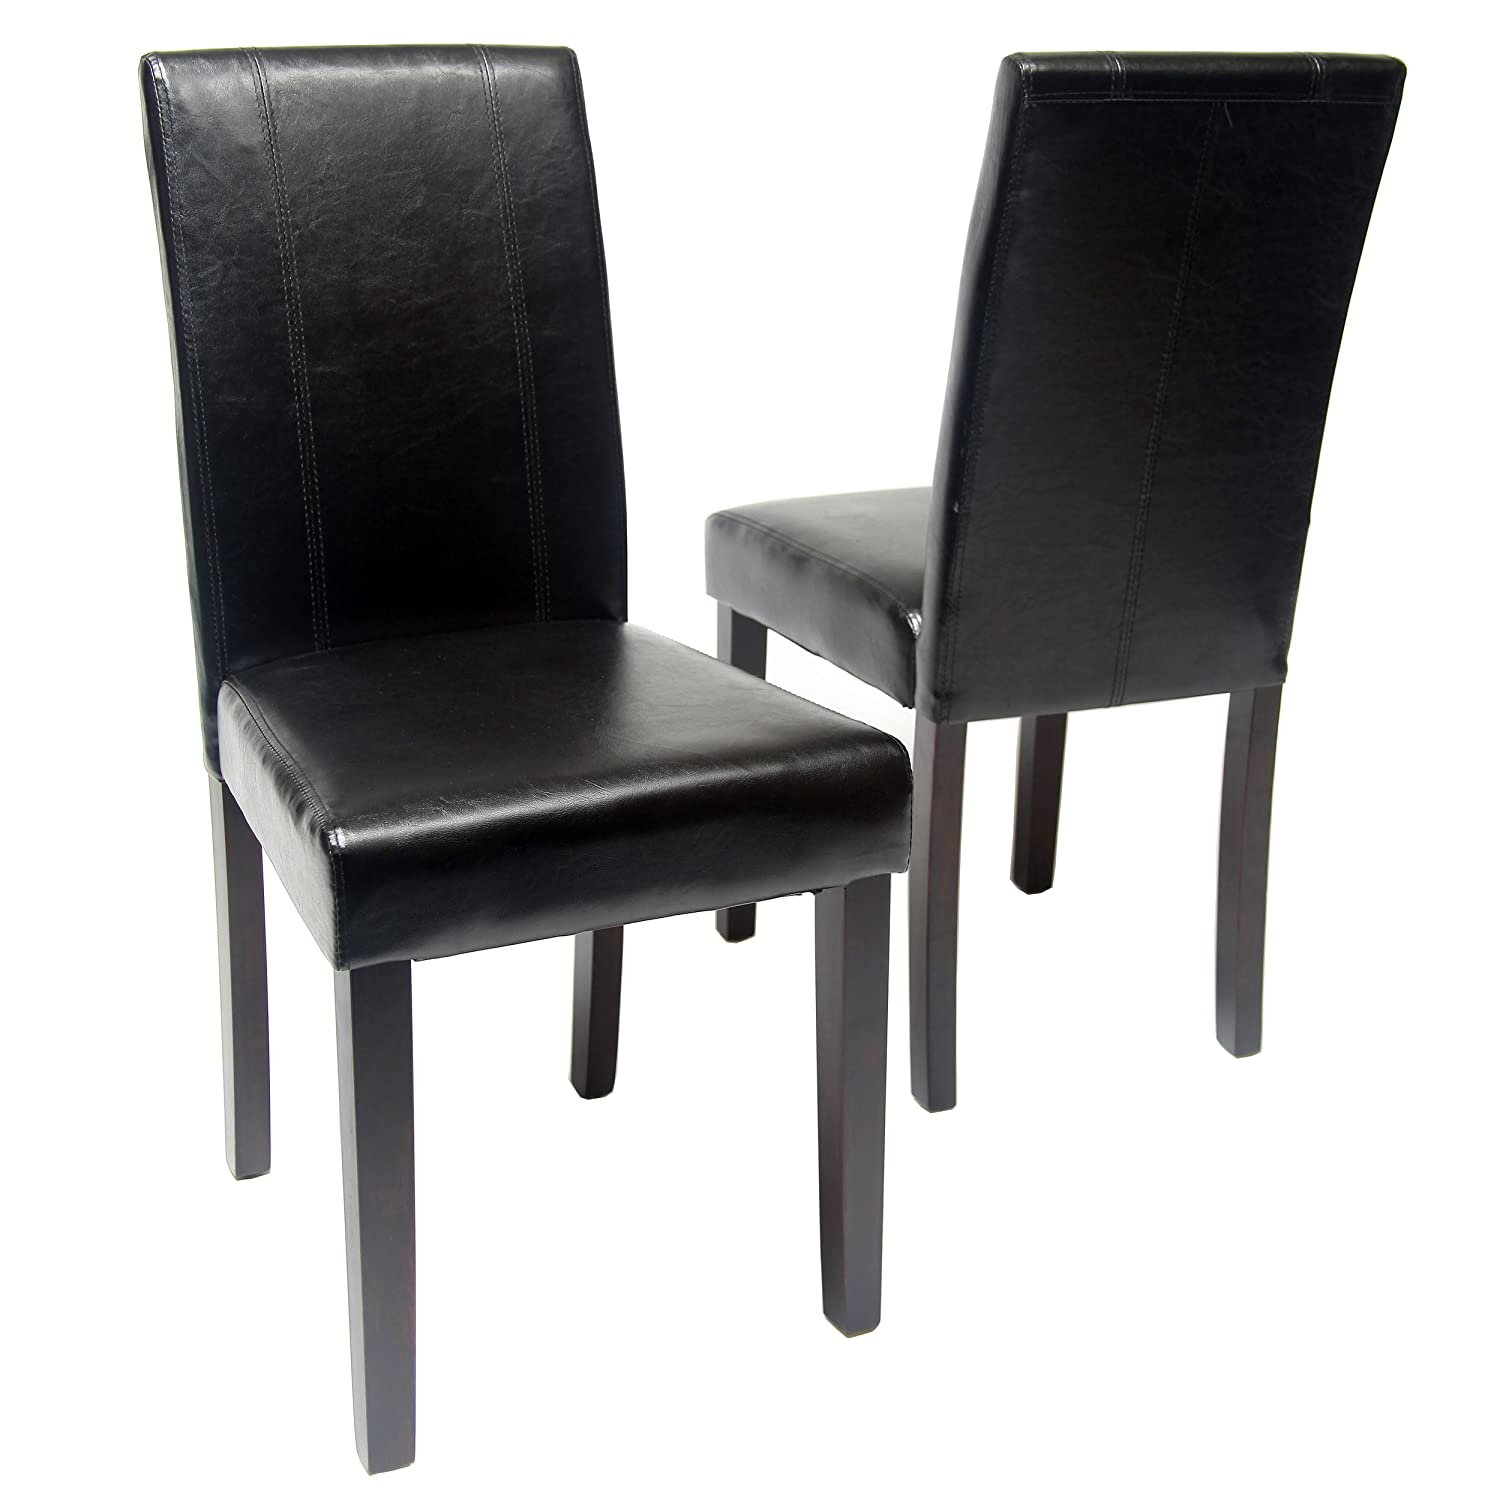 Stunning Black Dining Room Chair Chyna chyna